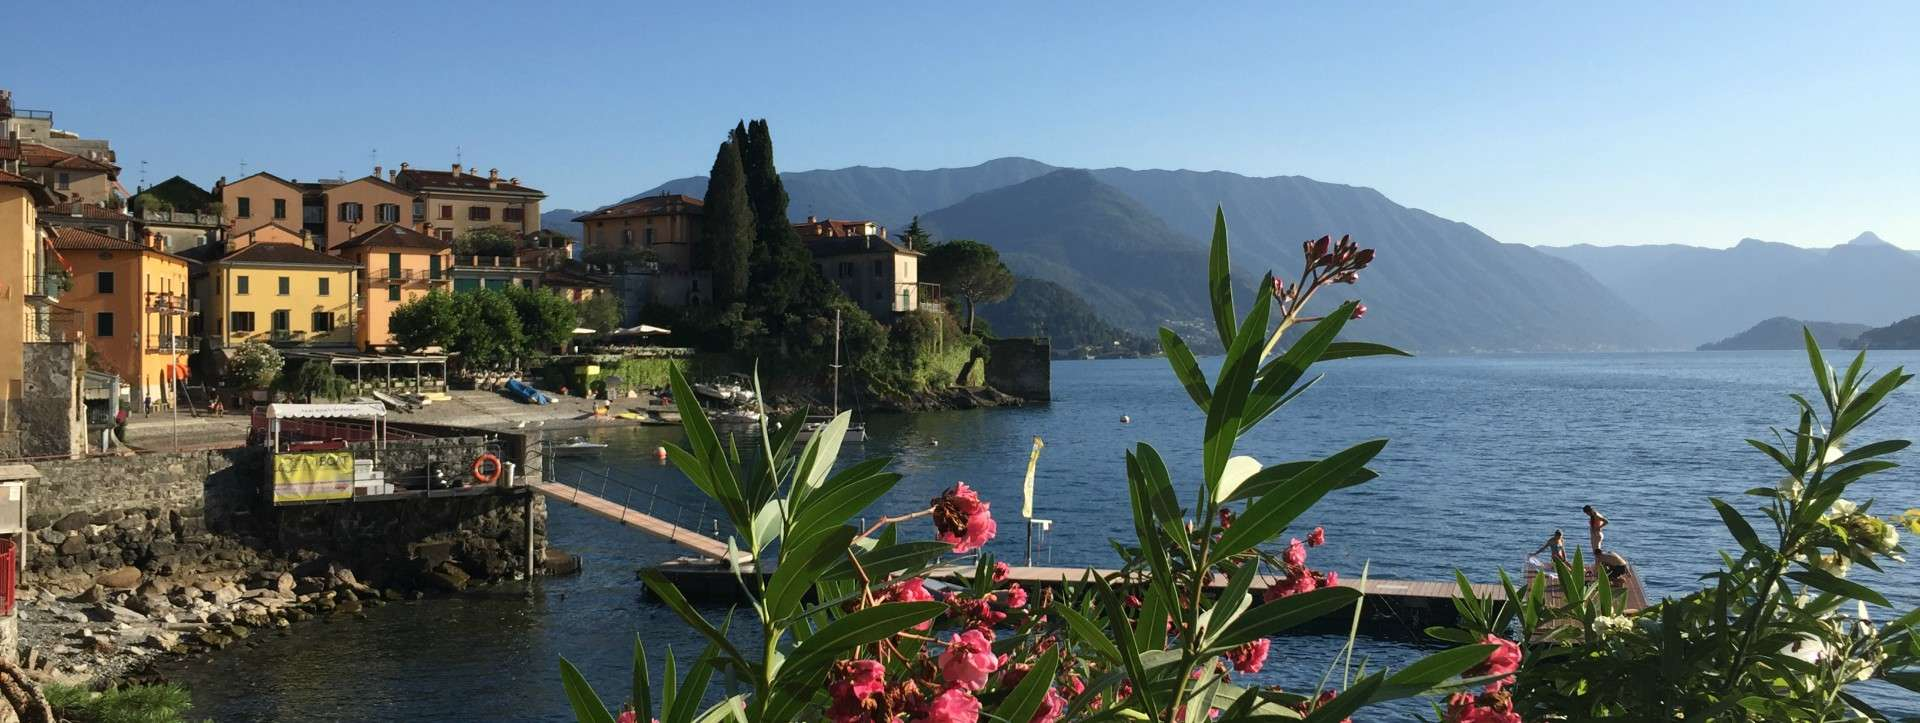 Varenna, Lake Como, Italy, Honeymoon, Travel,